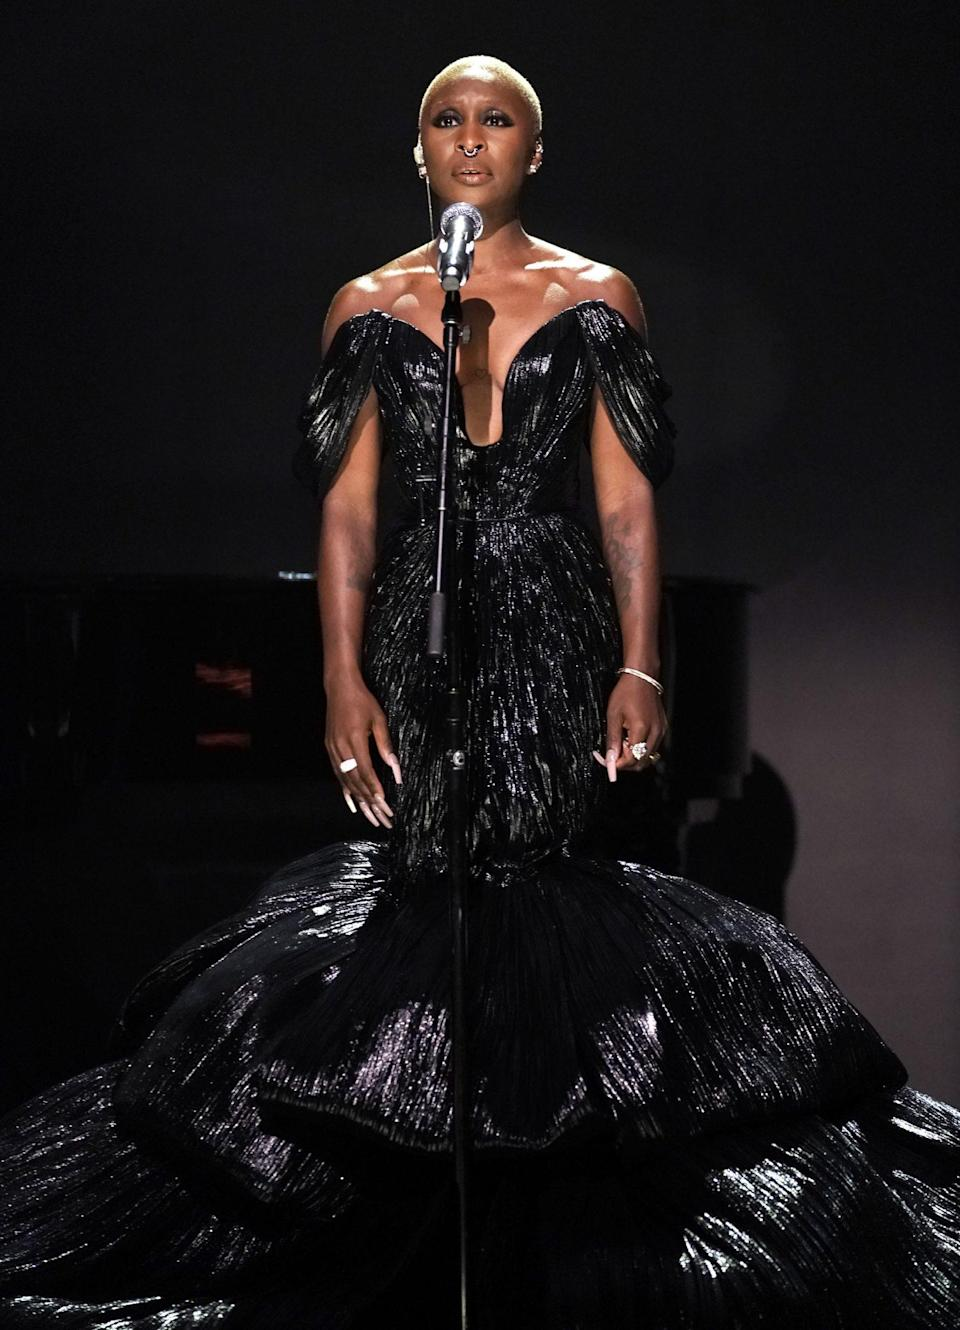 <p>Cynthia Erivo has the spotlight on Sept. 22 while performing on <em>The Tonight Show</em> in N.Y.C.</p>